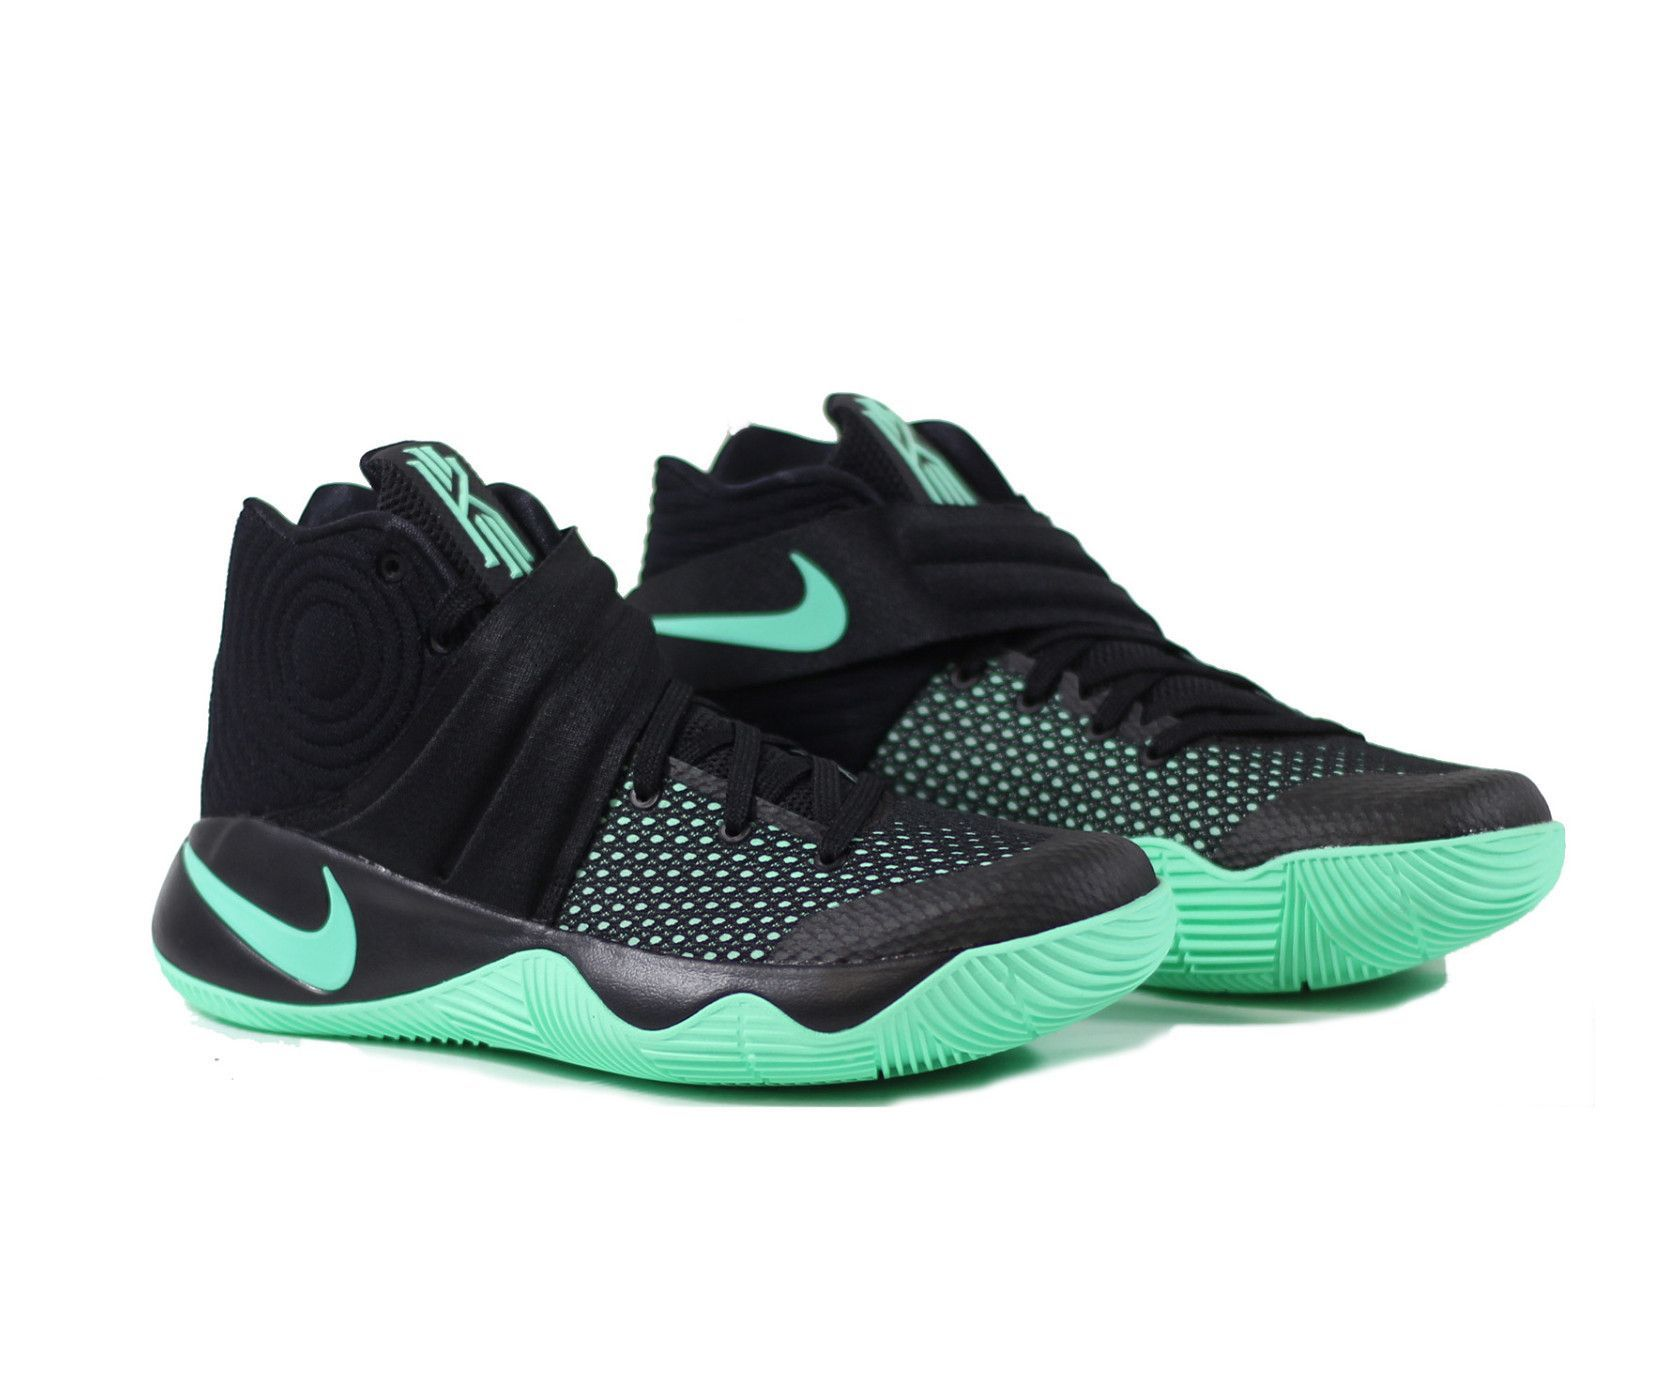 watch 97256 a3faf NIKE Kyrie 2 'Kyrie-Oke' - Black/Green Glow | kicks | Shoes ...